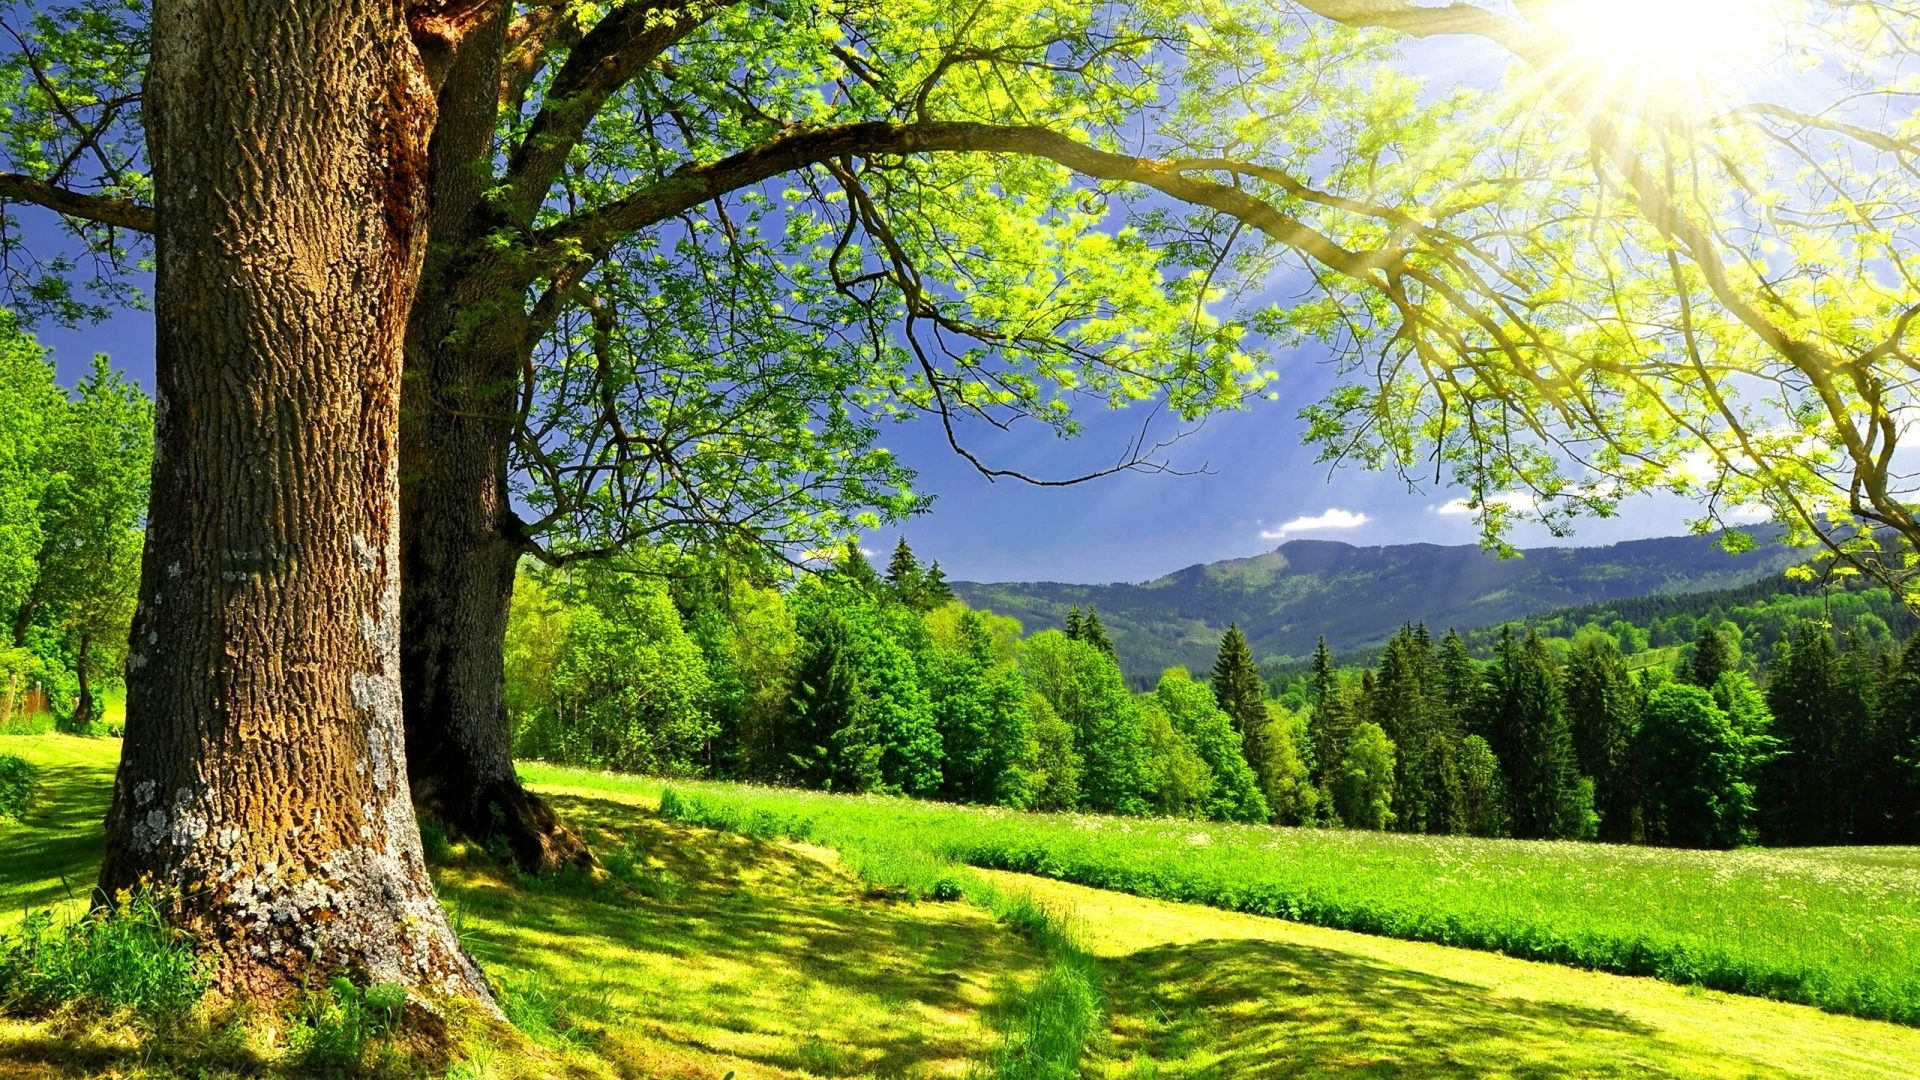 Golden Sun Rays Hills Grass Sunlight Tree Forest Clear Meadow Cllouds Dazzling Mountain Sunny Sunshine Sky Nice Summer Nature Bright Greenery Beautiful Lovely Green High Resolution